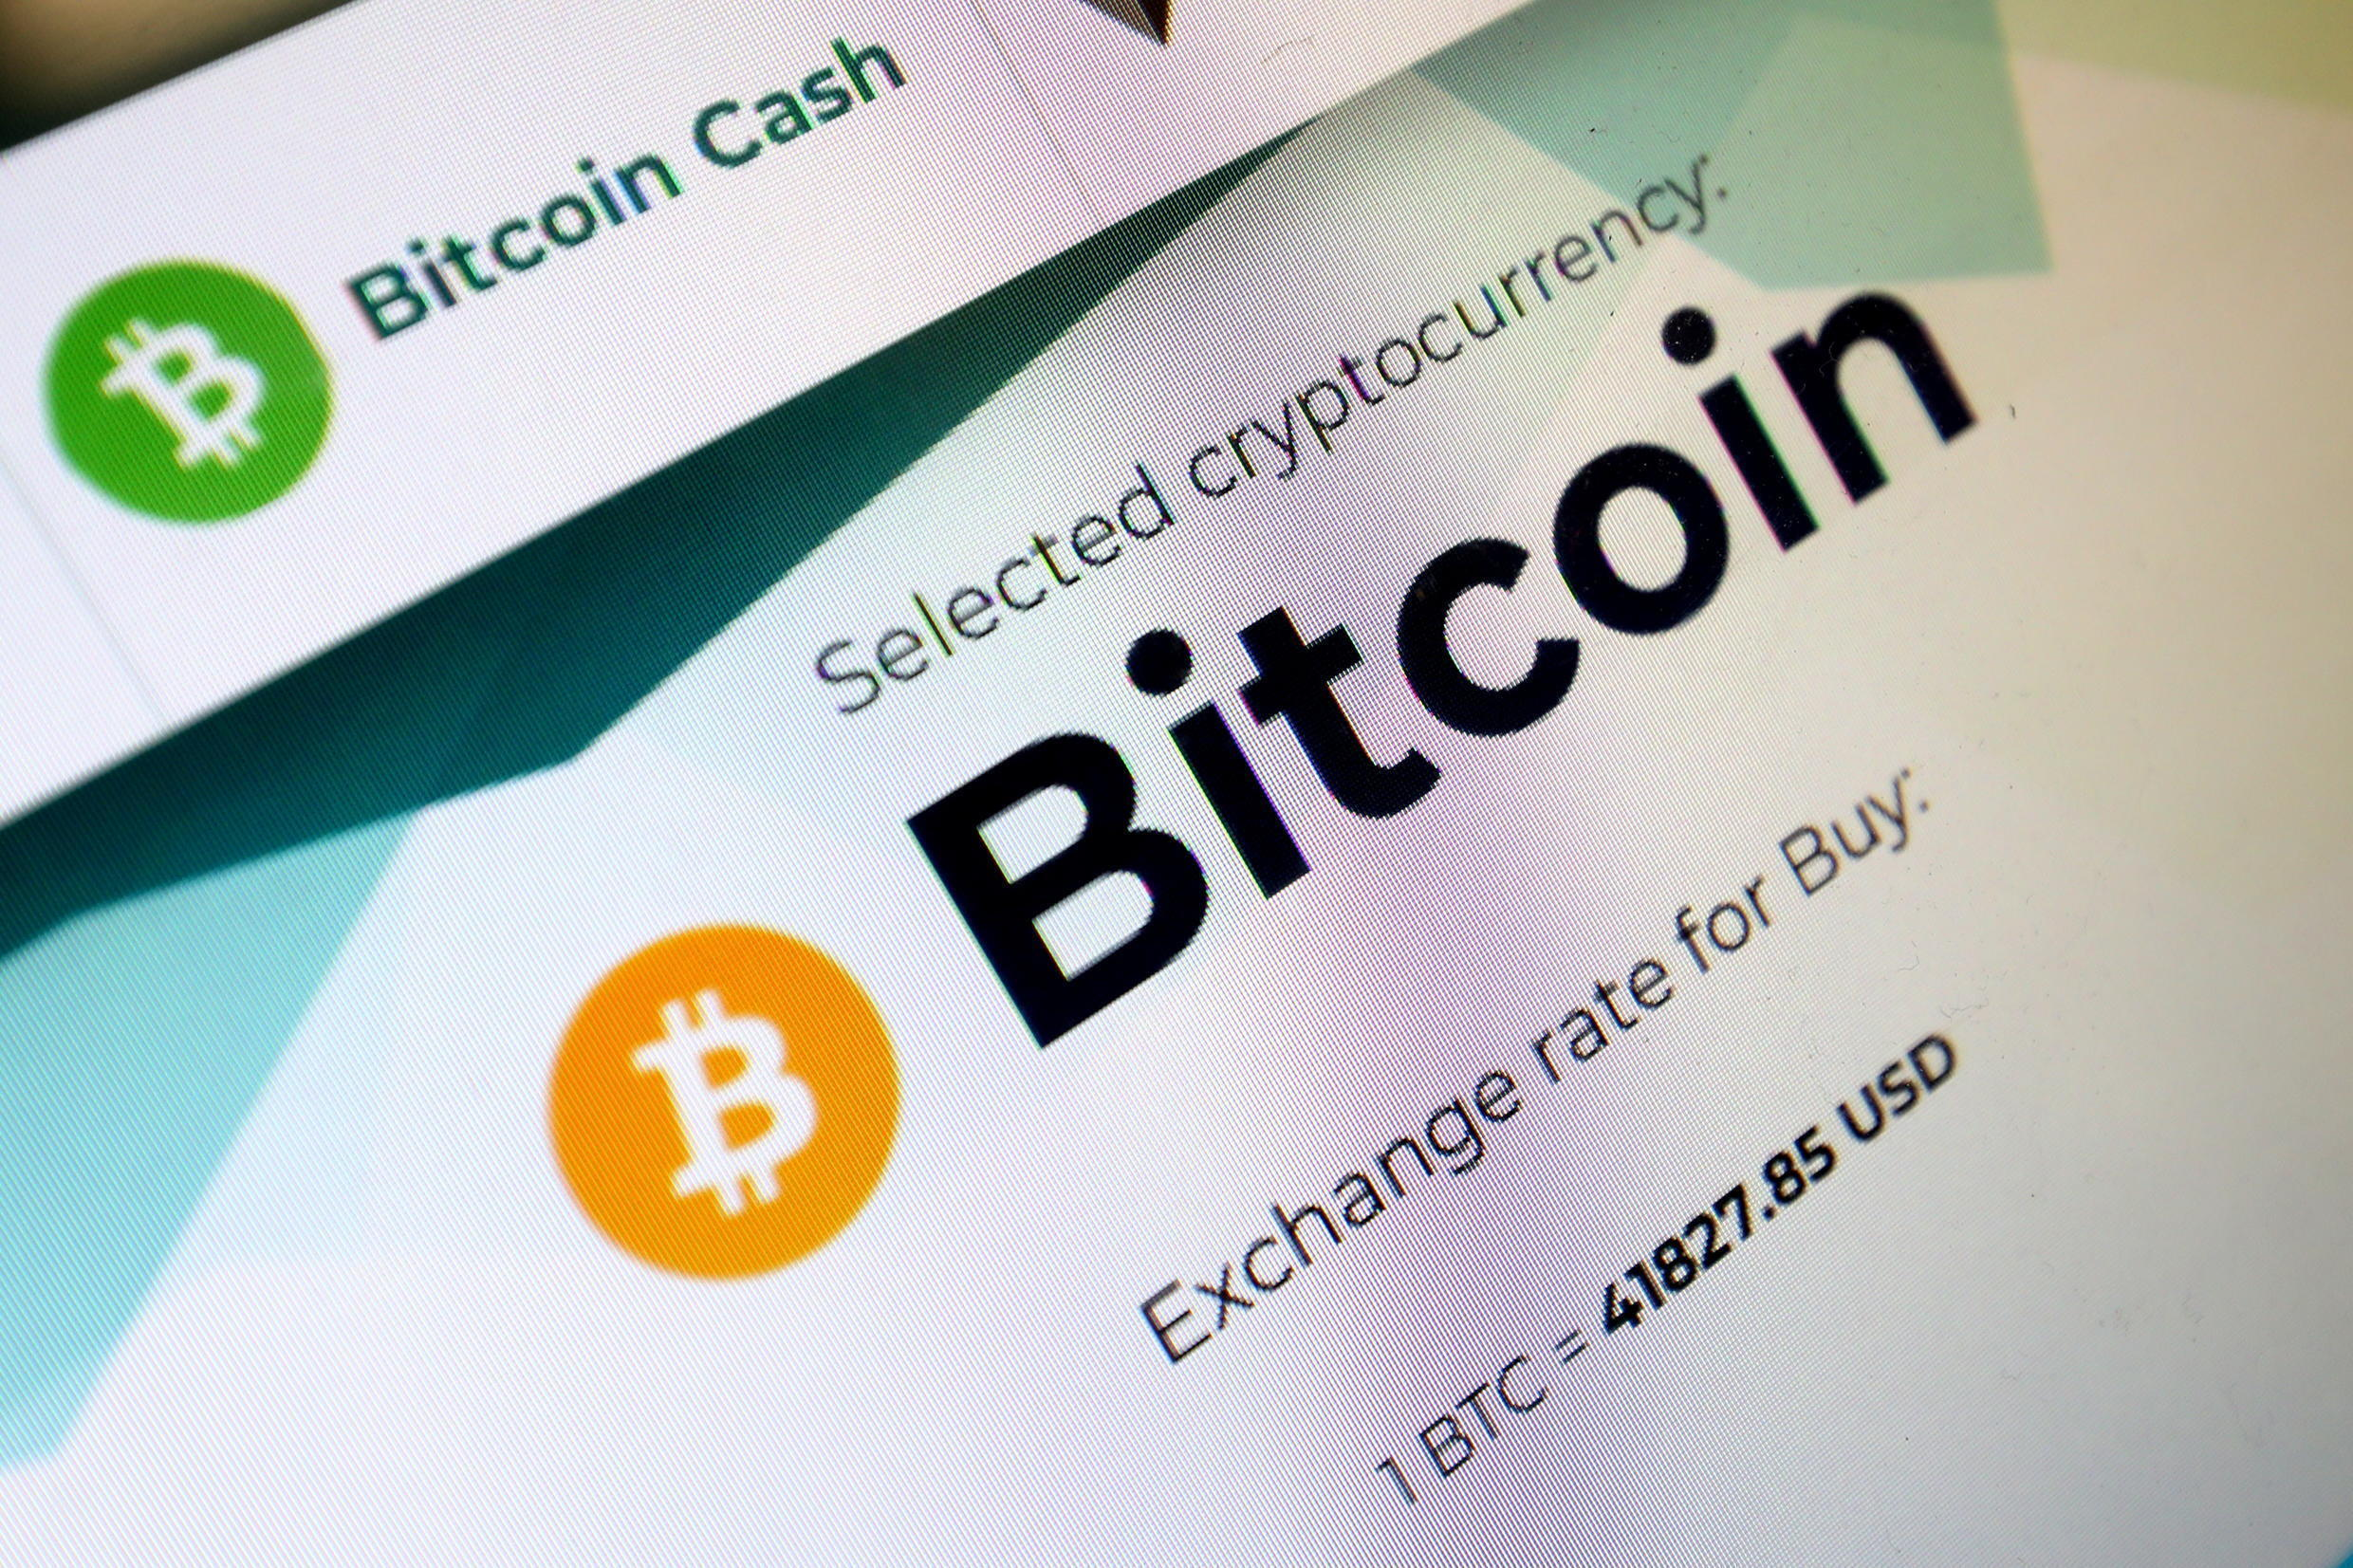 2021-05-19T171005Z_519070049_RC21JN9MT9WD_RTRMADP_3_CRYPTO-CURRENCY-BITCOIN